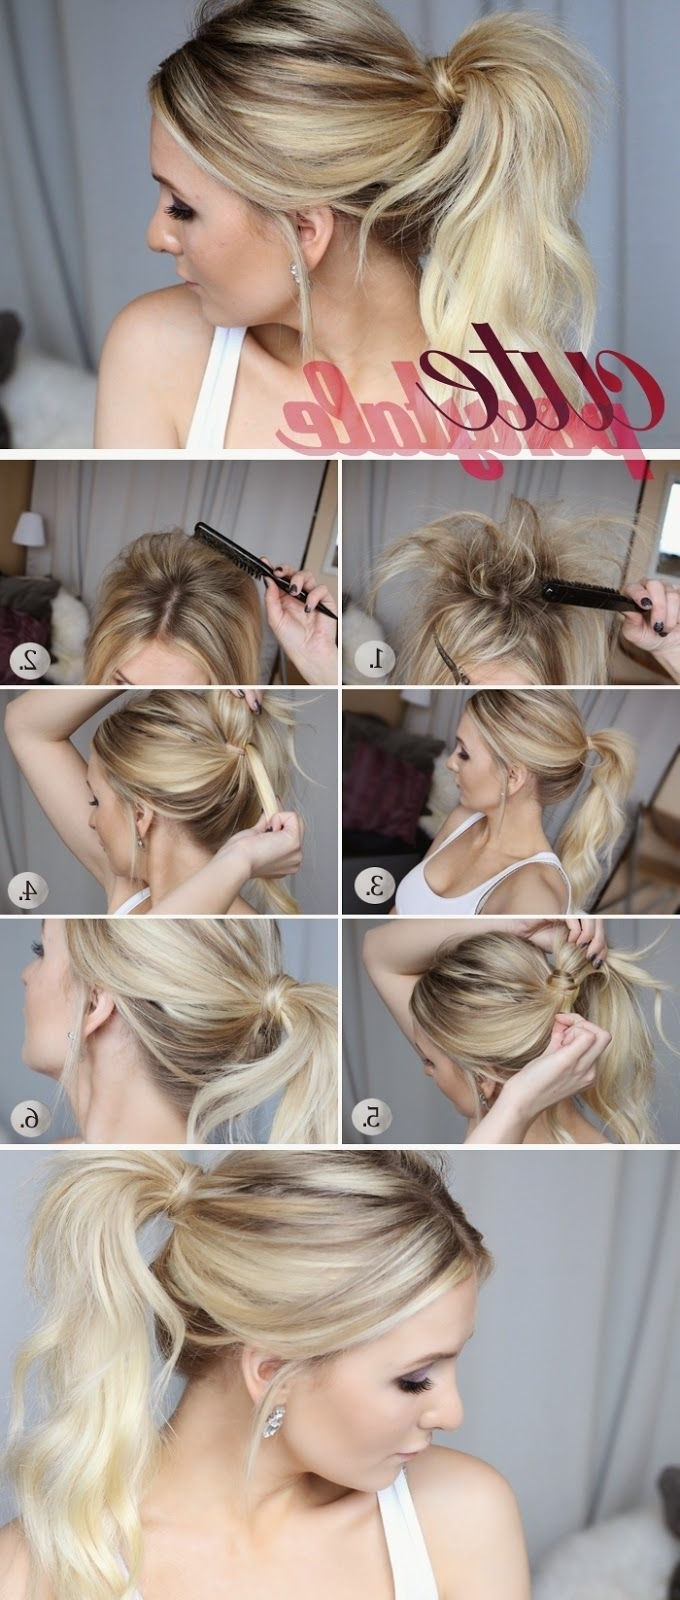 10 Quick And Simple Ponytail Tutorials For Fall (View 1 of 20)